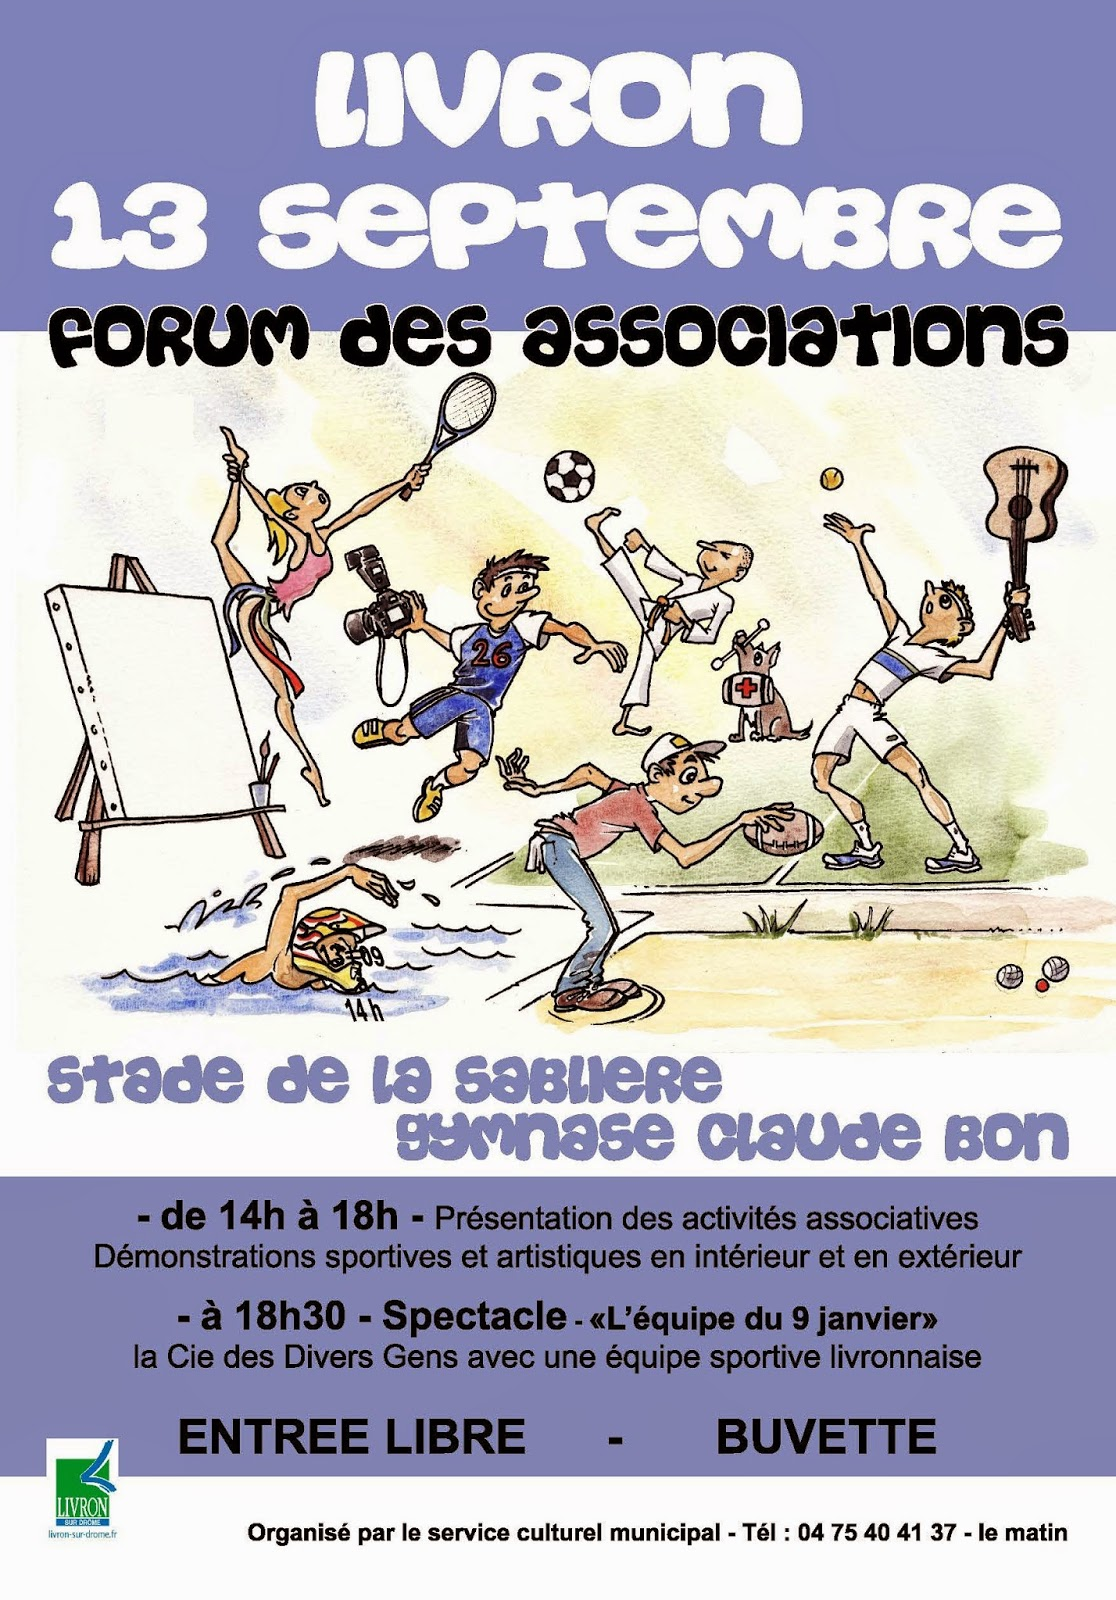 http://livron-sur-drome.fr/index.php/agenda/details/977-forum-des-associations